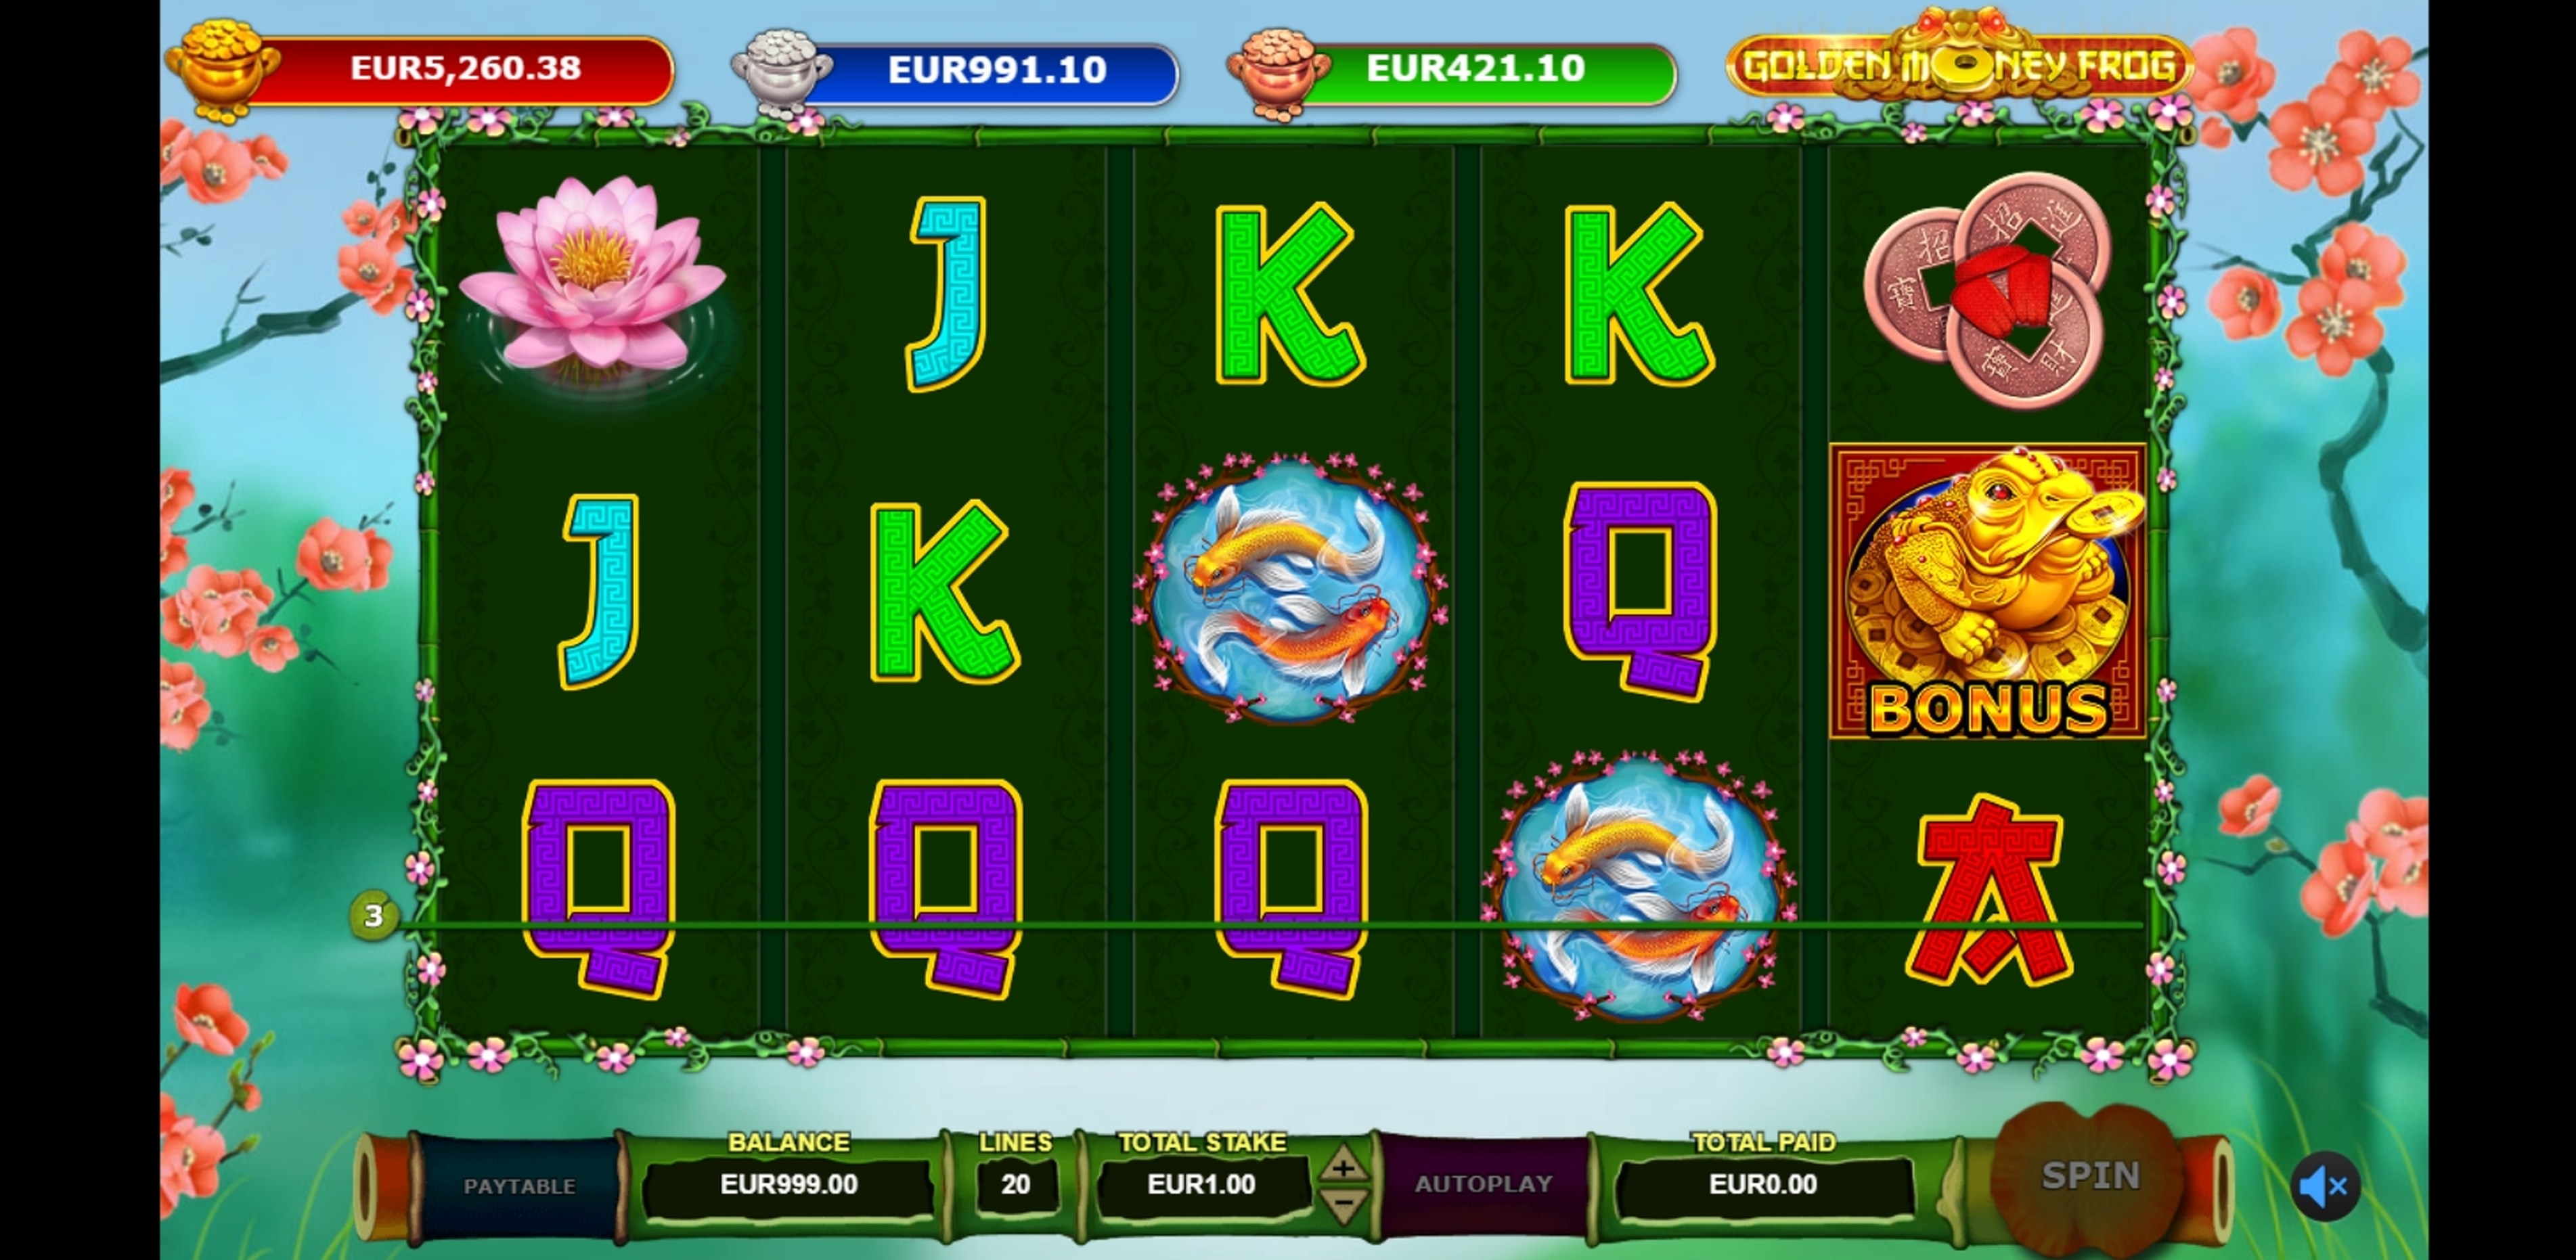 Win Money in Golden Money Frog Free Slot Game by Sigma Gaming